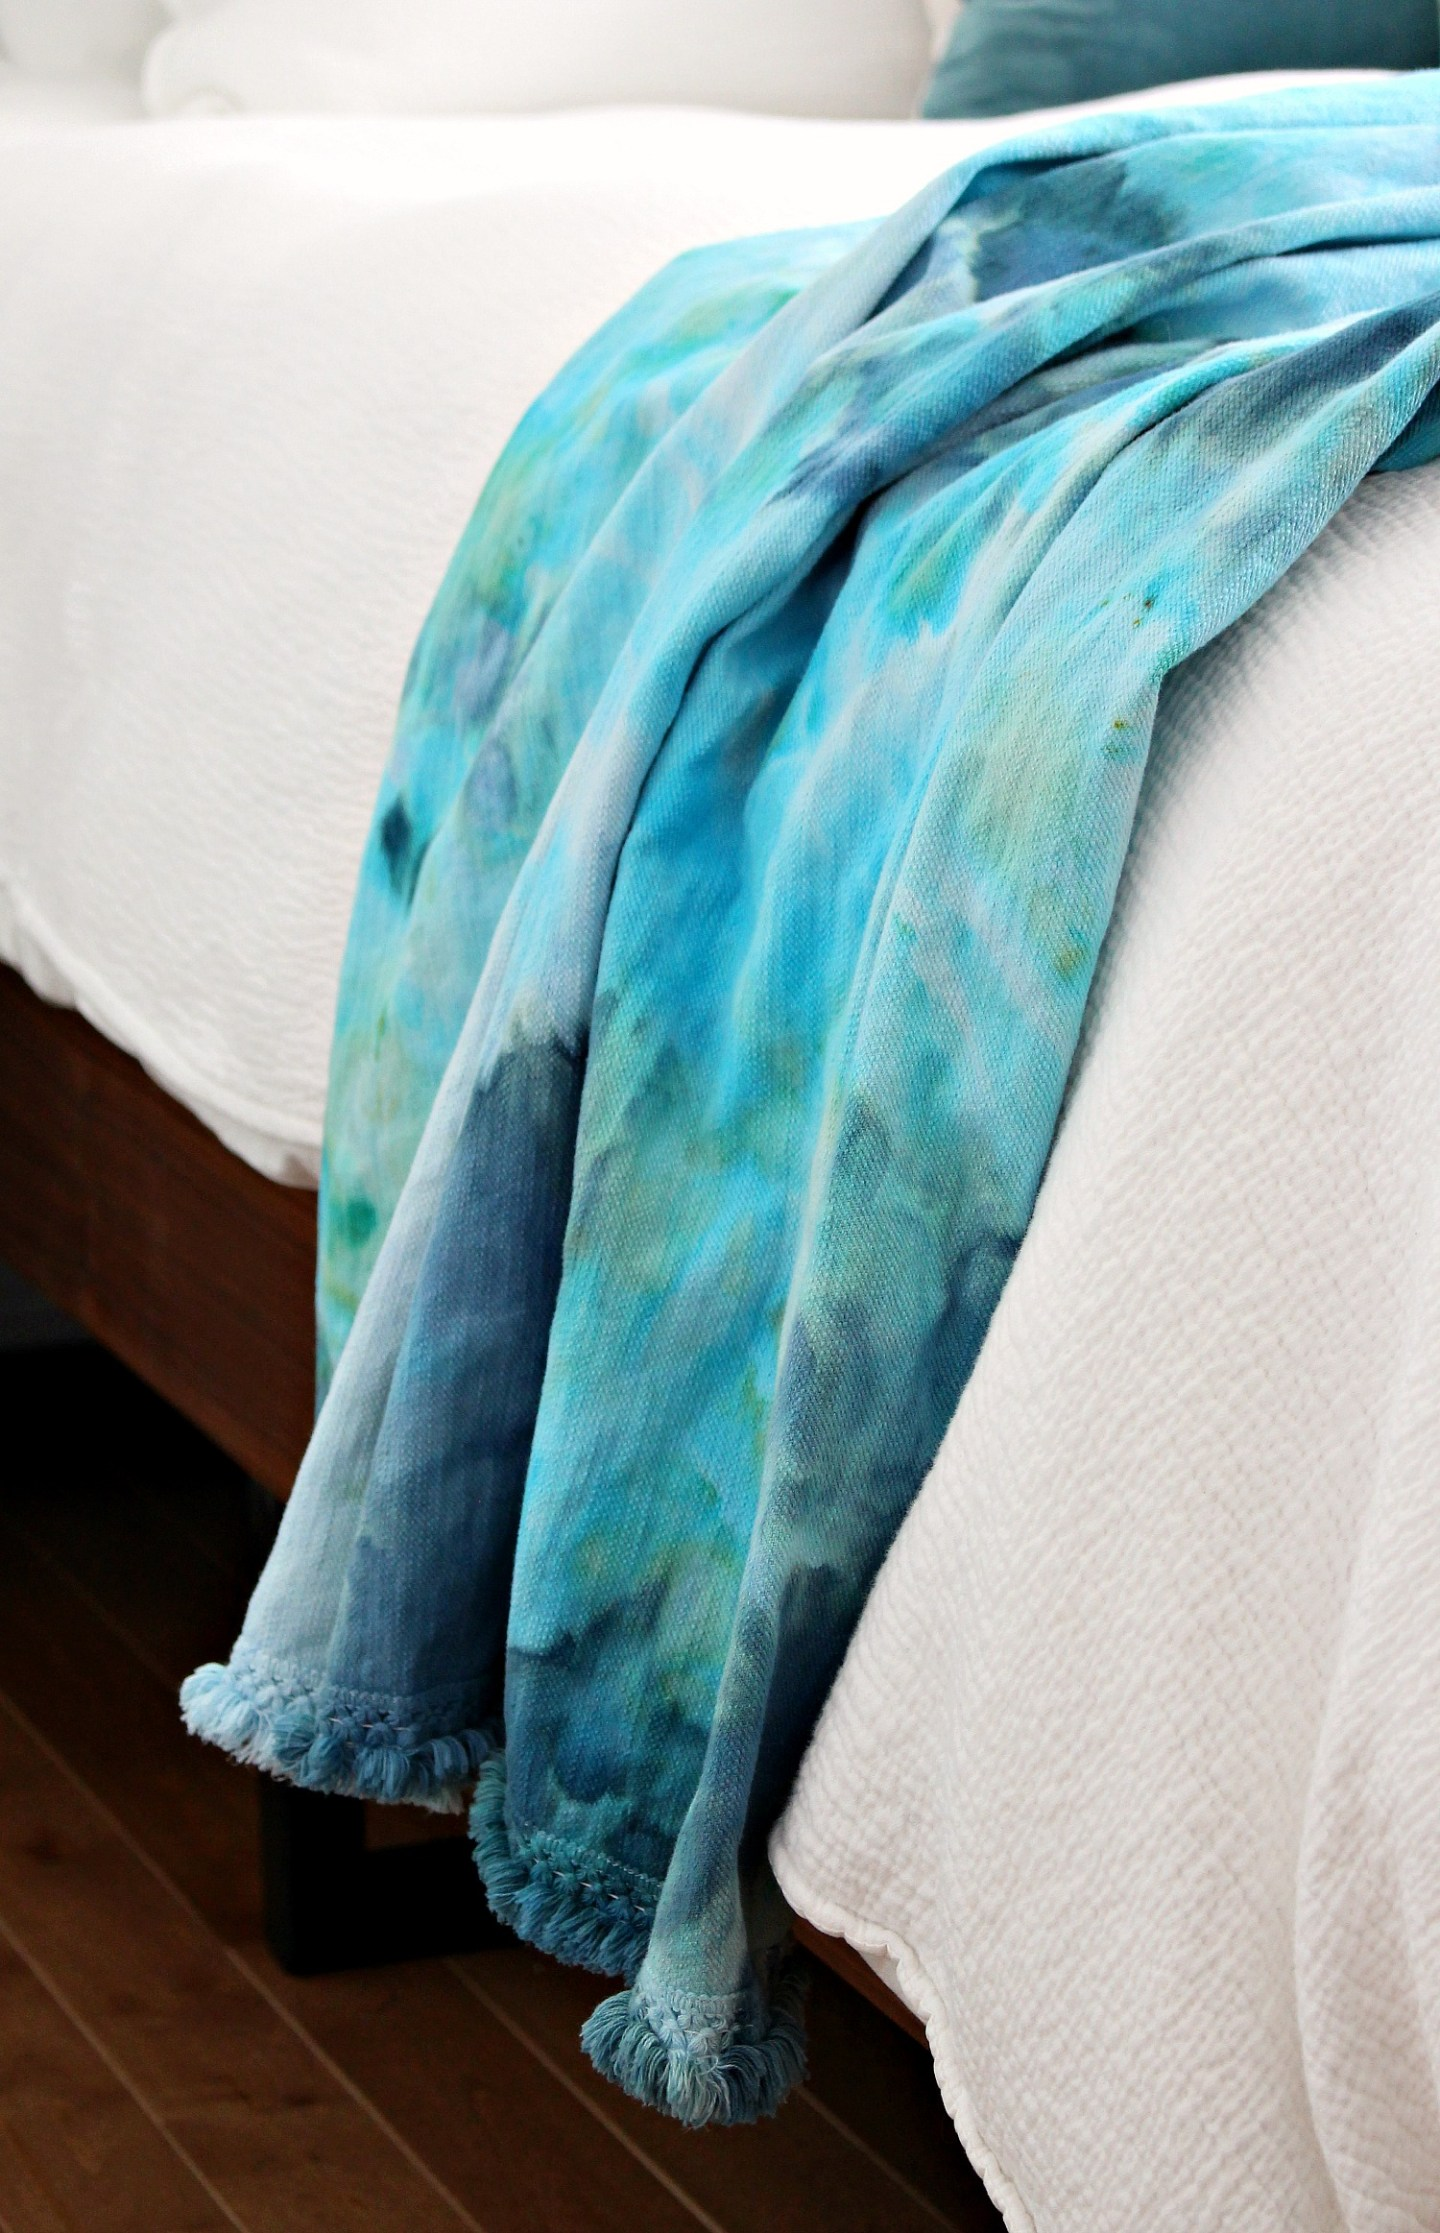 Procion Parakeet and Procion Teal Dyes Used for DIY Ice Dye Project | Learn How to Ice Dye - it's an Easy DIY Dyeing Project